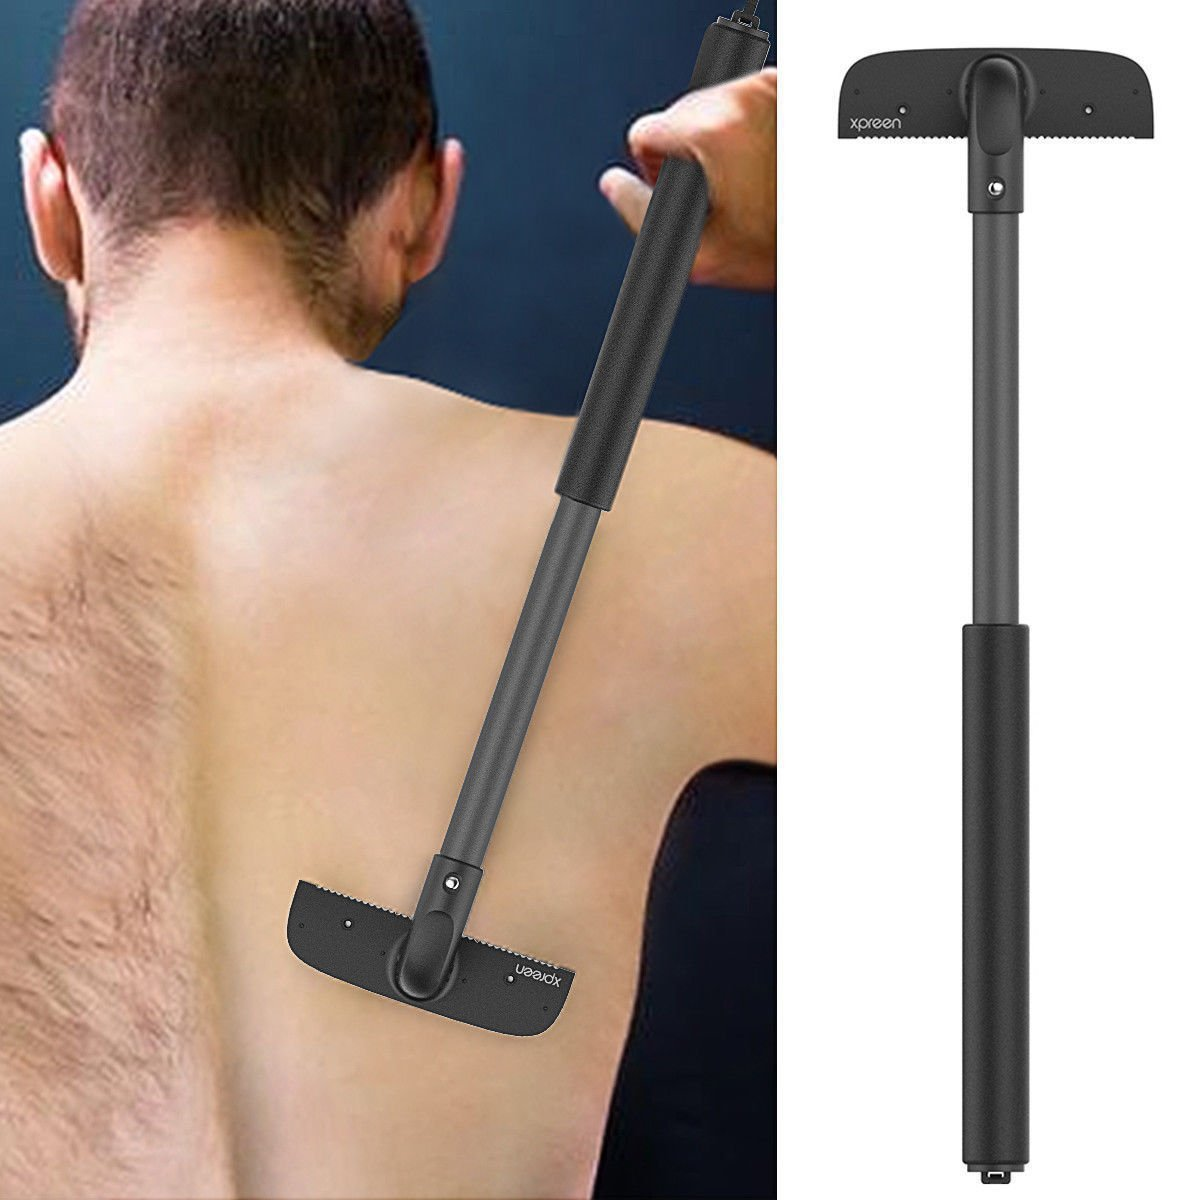 Back Shaver - Stretchable Back Shaver, Dry Wet Mens Body Grooming Hair Trimmer Removal Razor